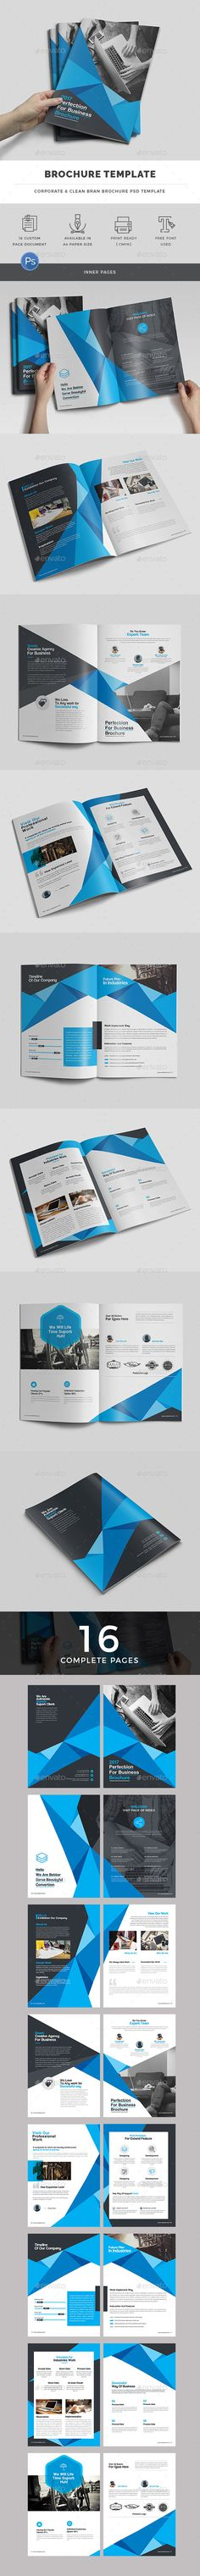 Business Brochure Template - 16 Custom Pages